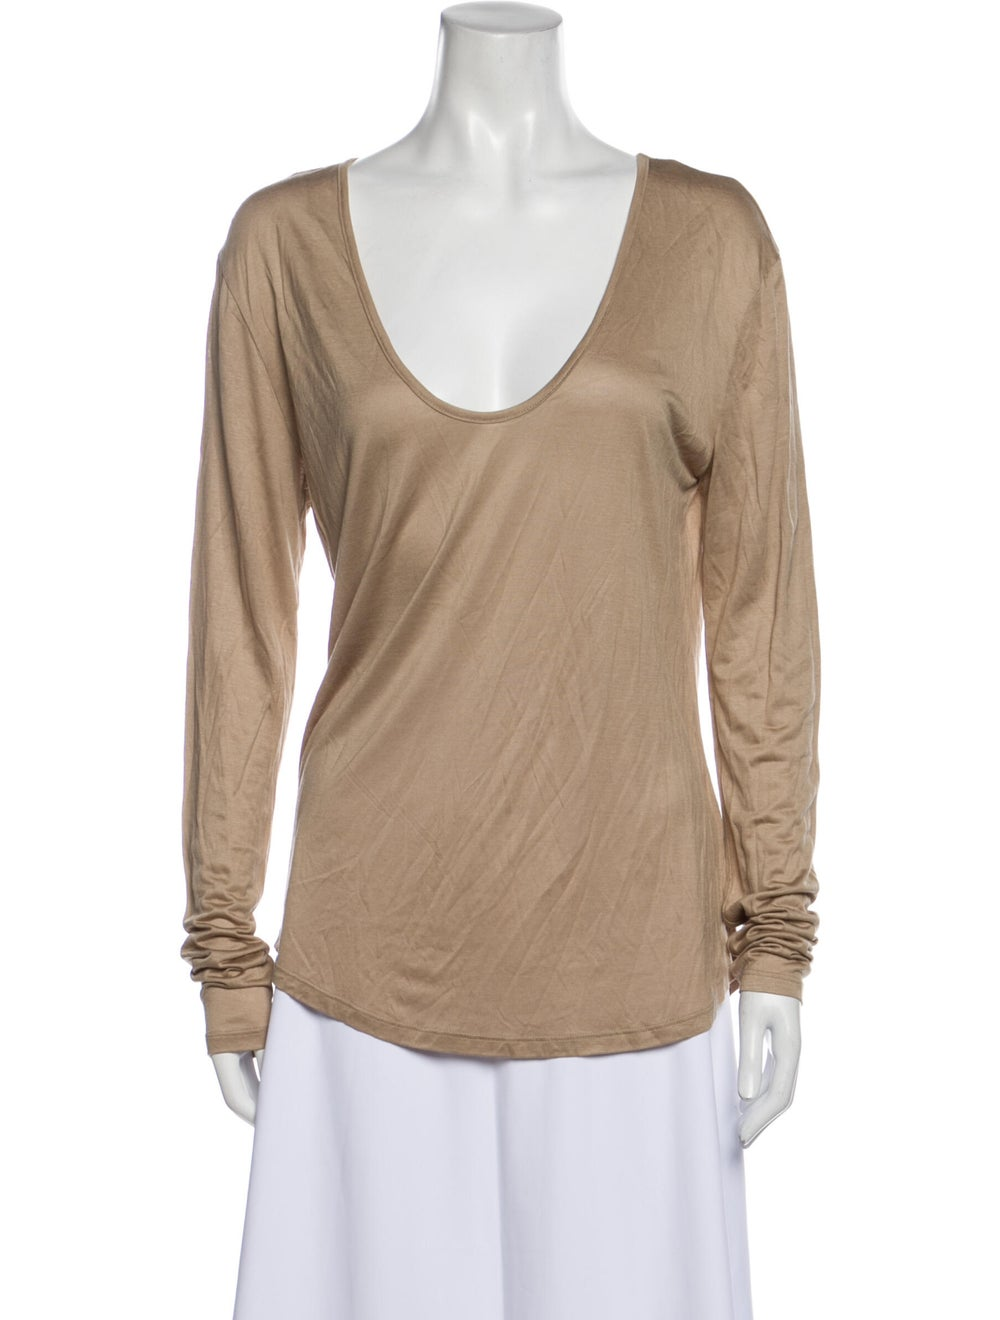 L'Agence Scoop Neck Long Sleeve T-Shirt Brown - image 1